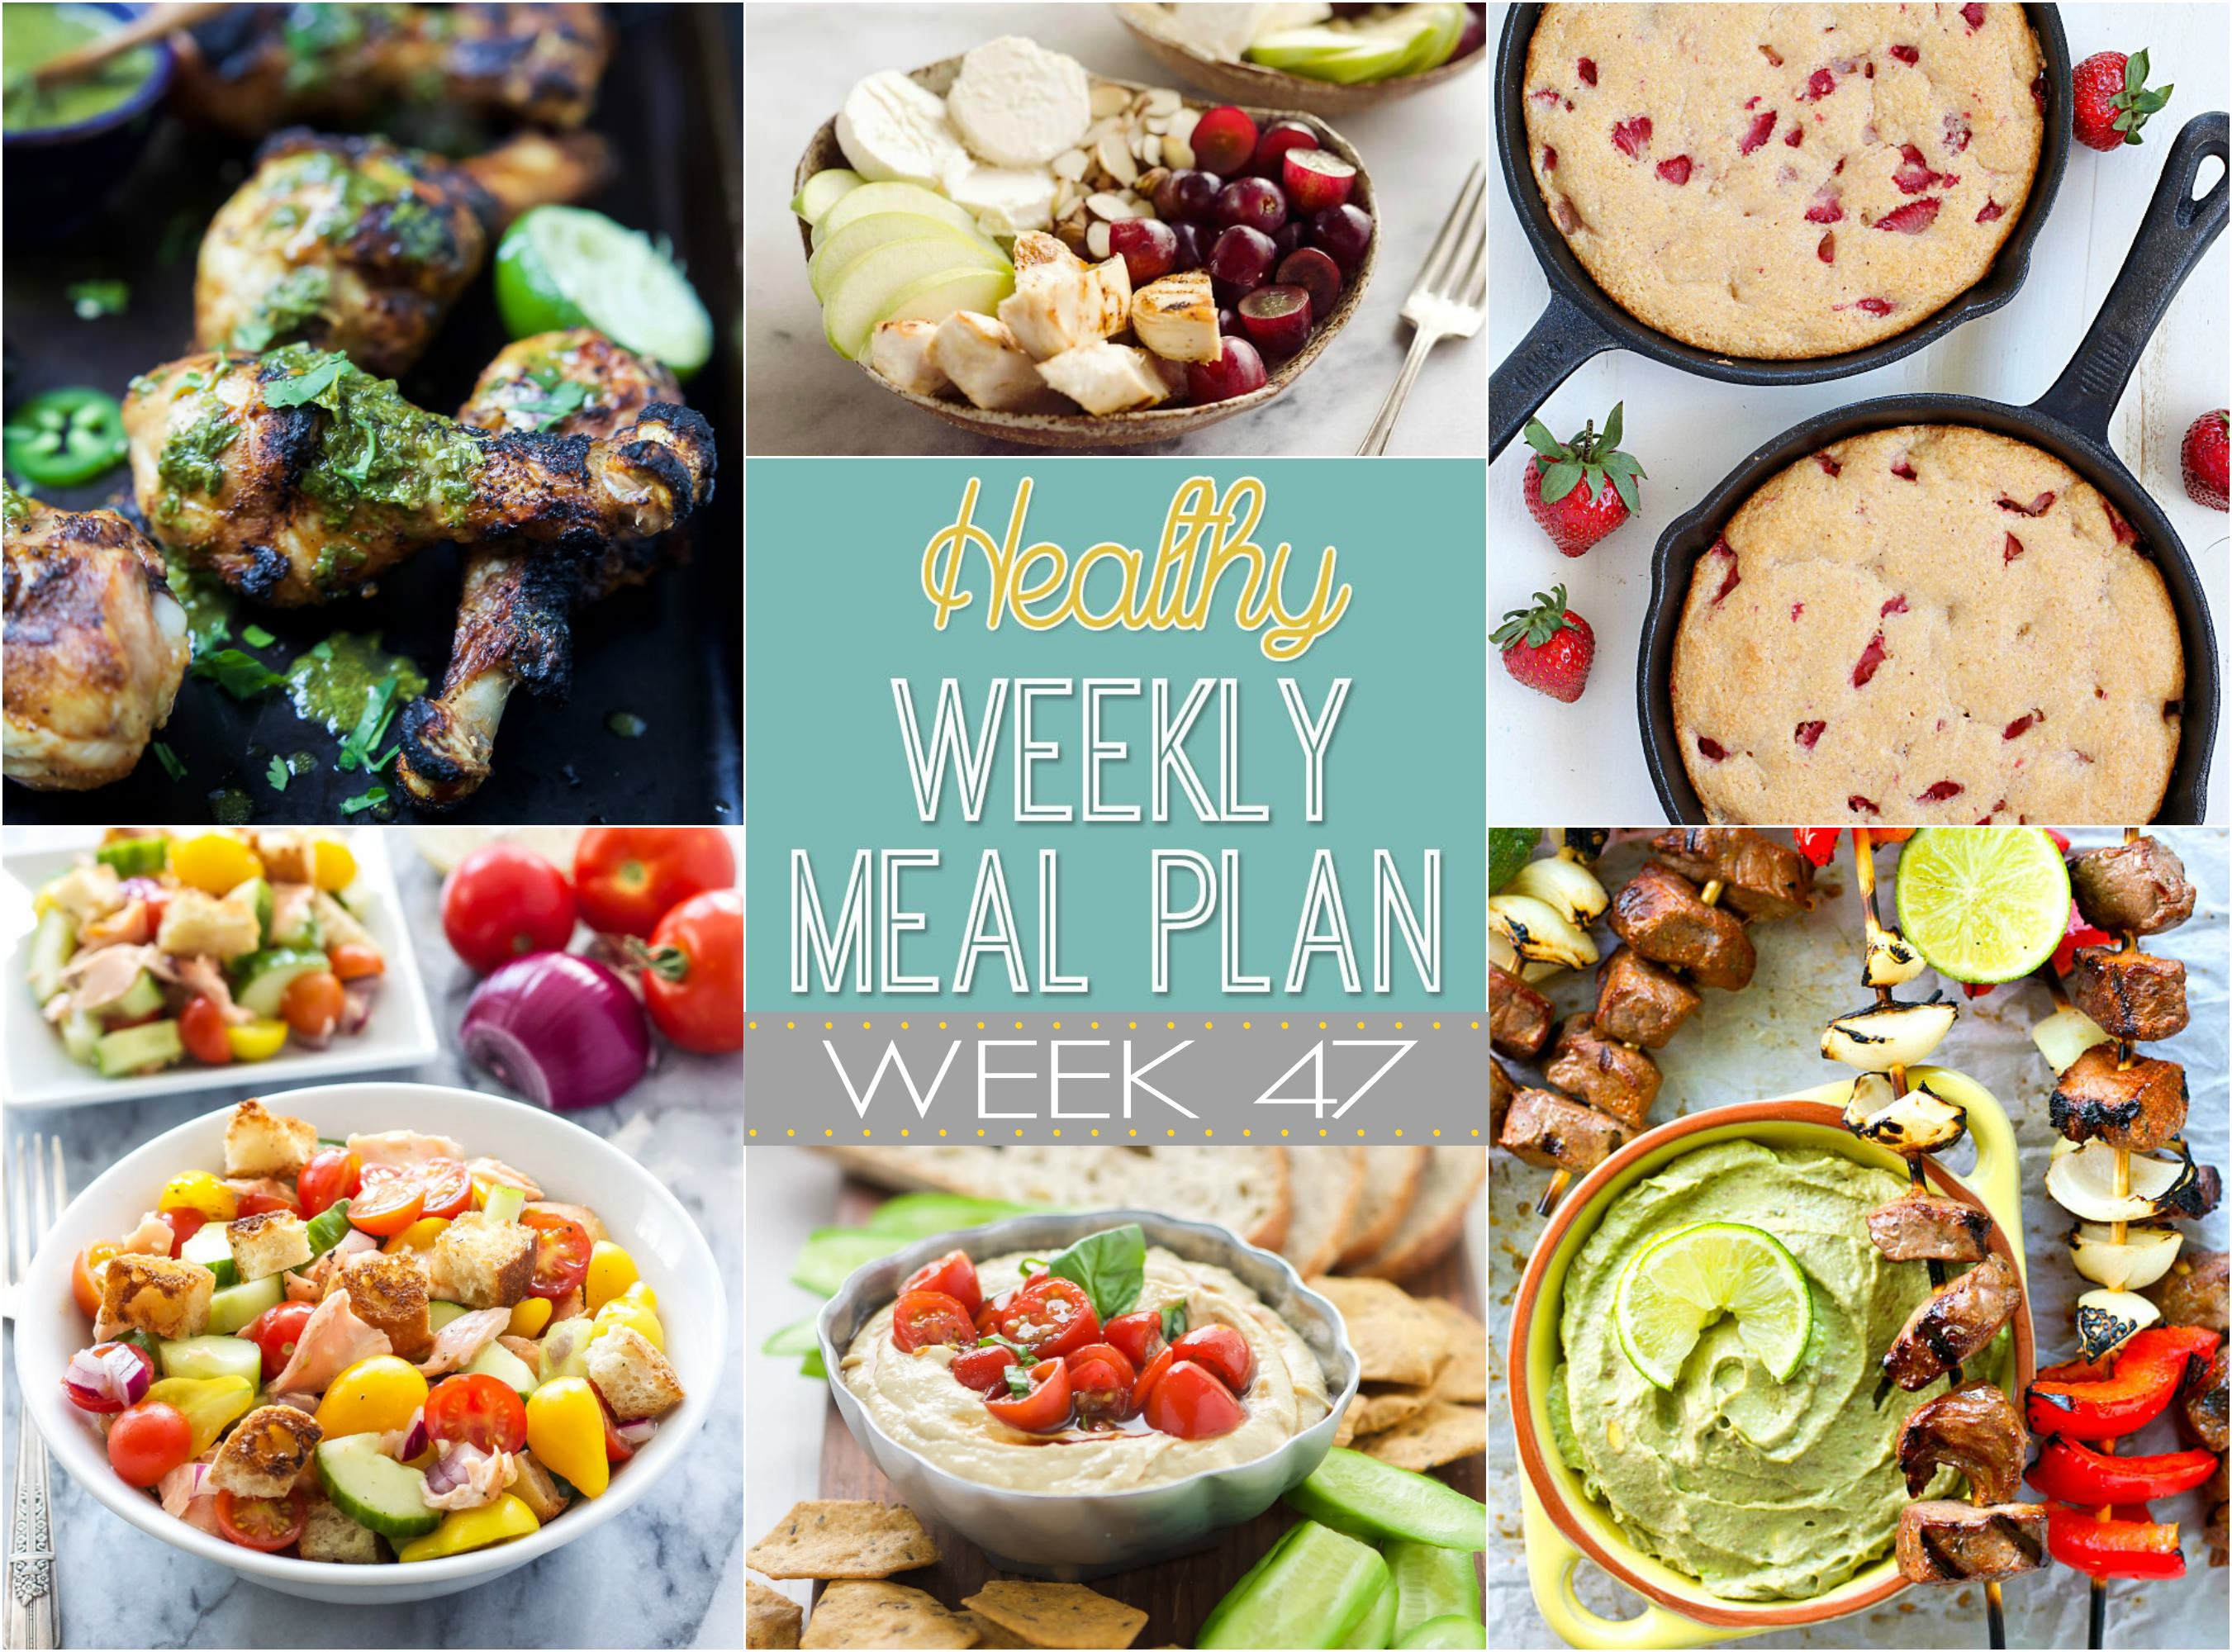 This week we have delicious meals filled with summer flavor; Such as grilled steak and pepper kabobs and Fruit & Goat Cheese Chicken Bowls!